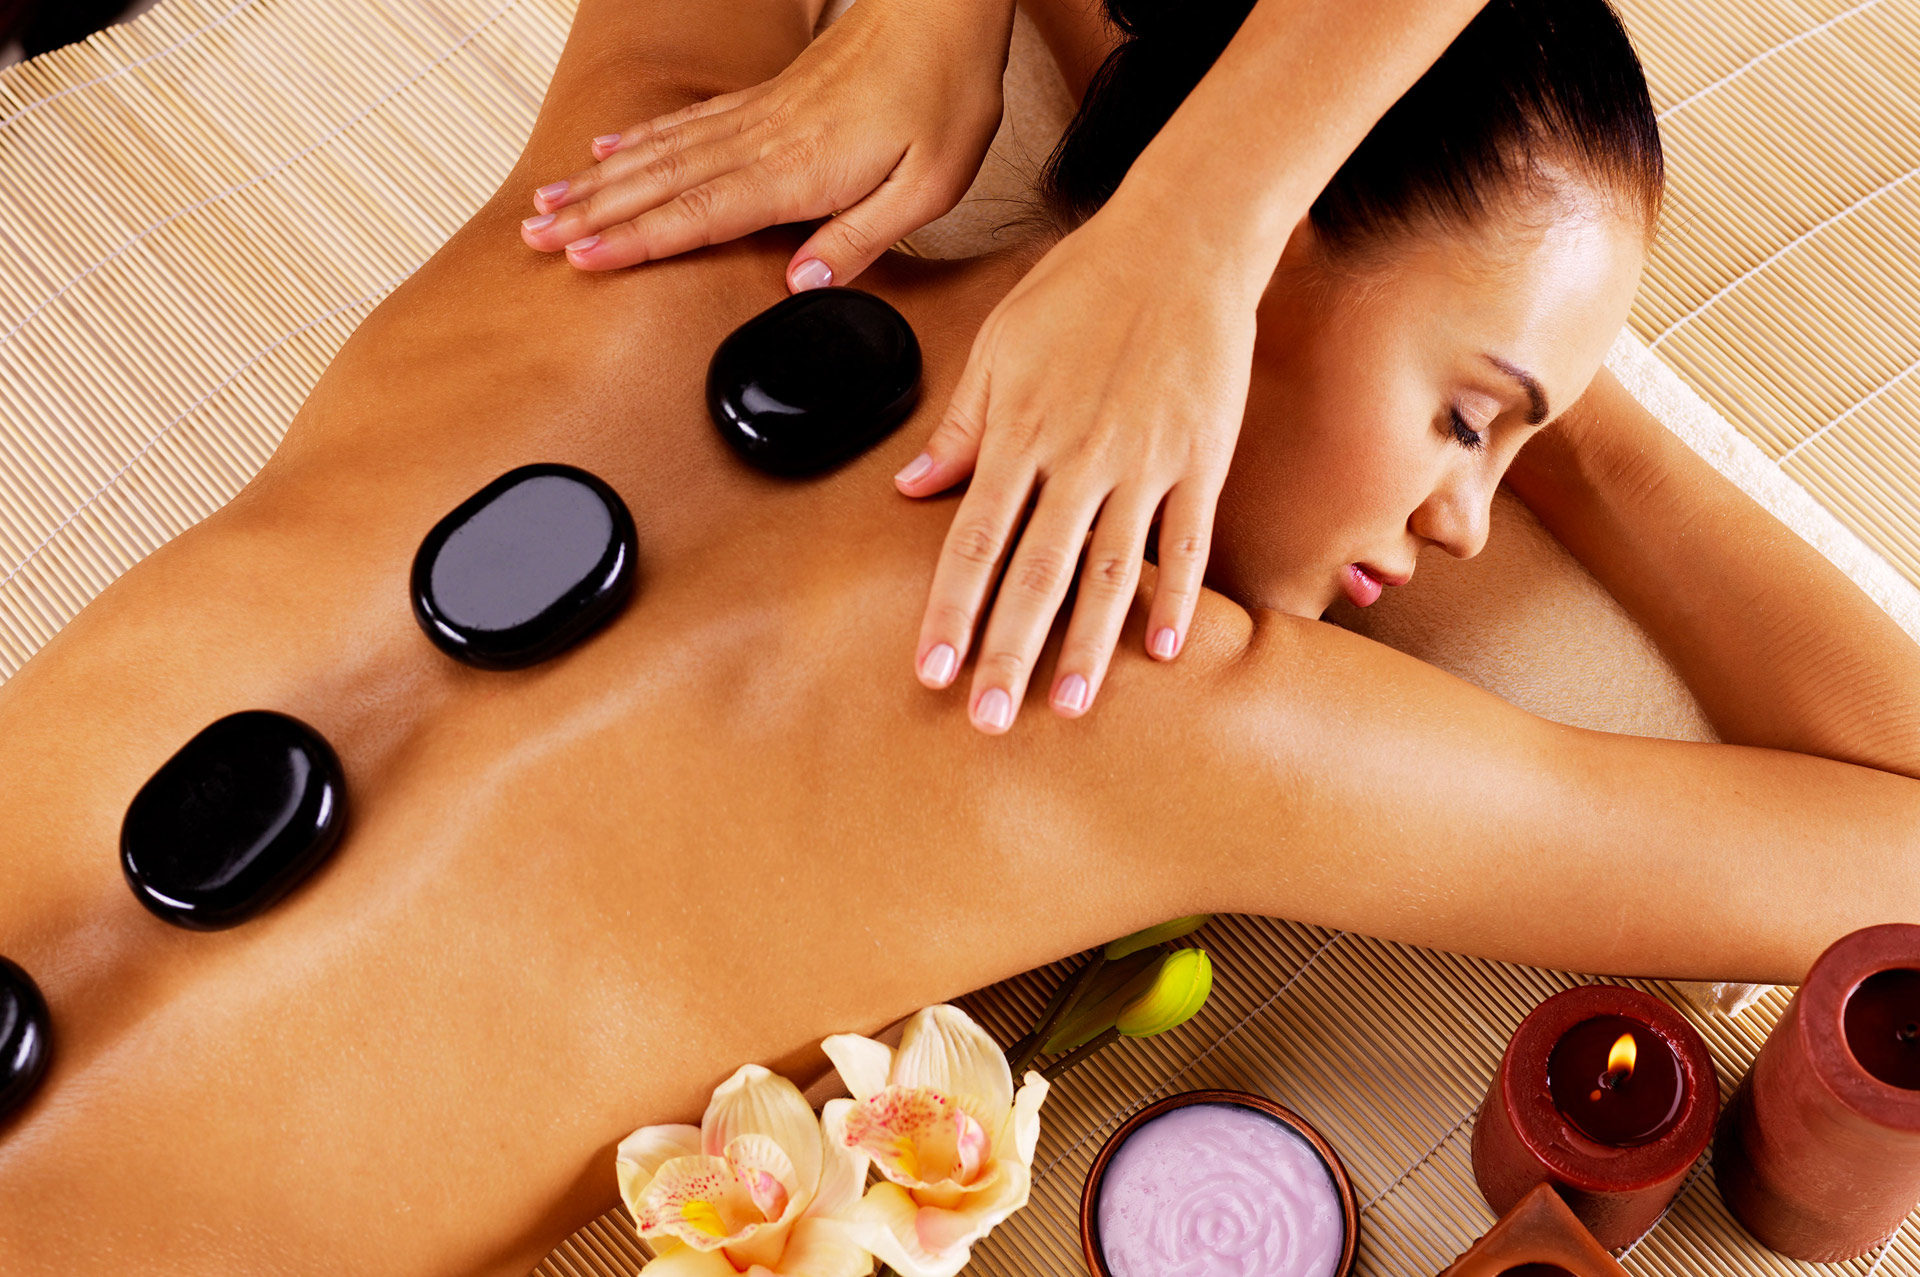 Our experienced massage therapists